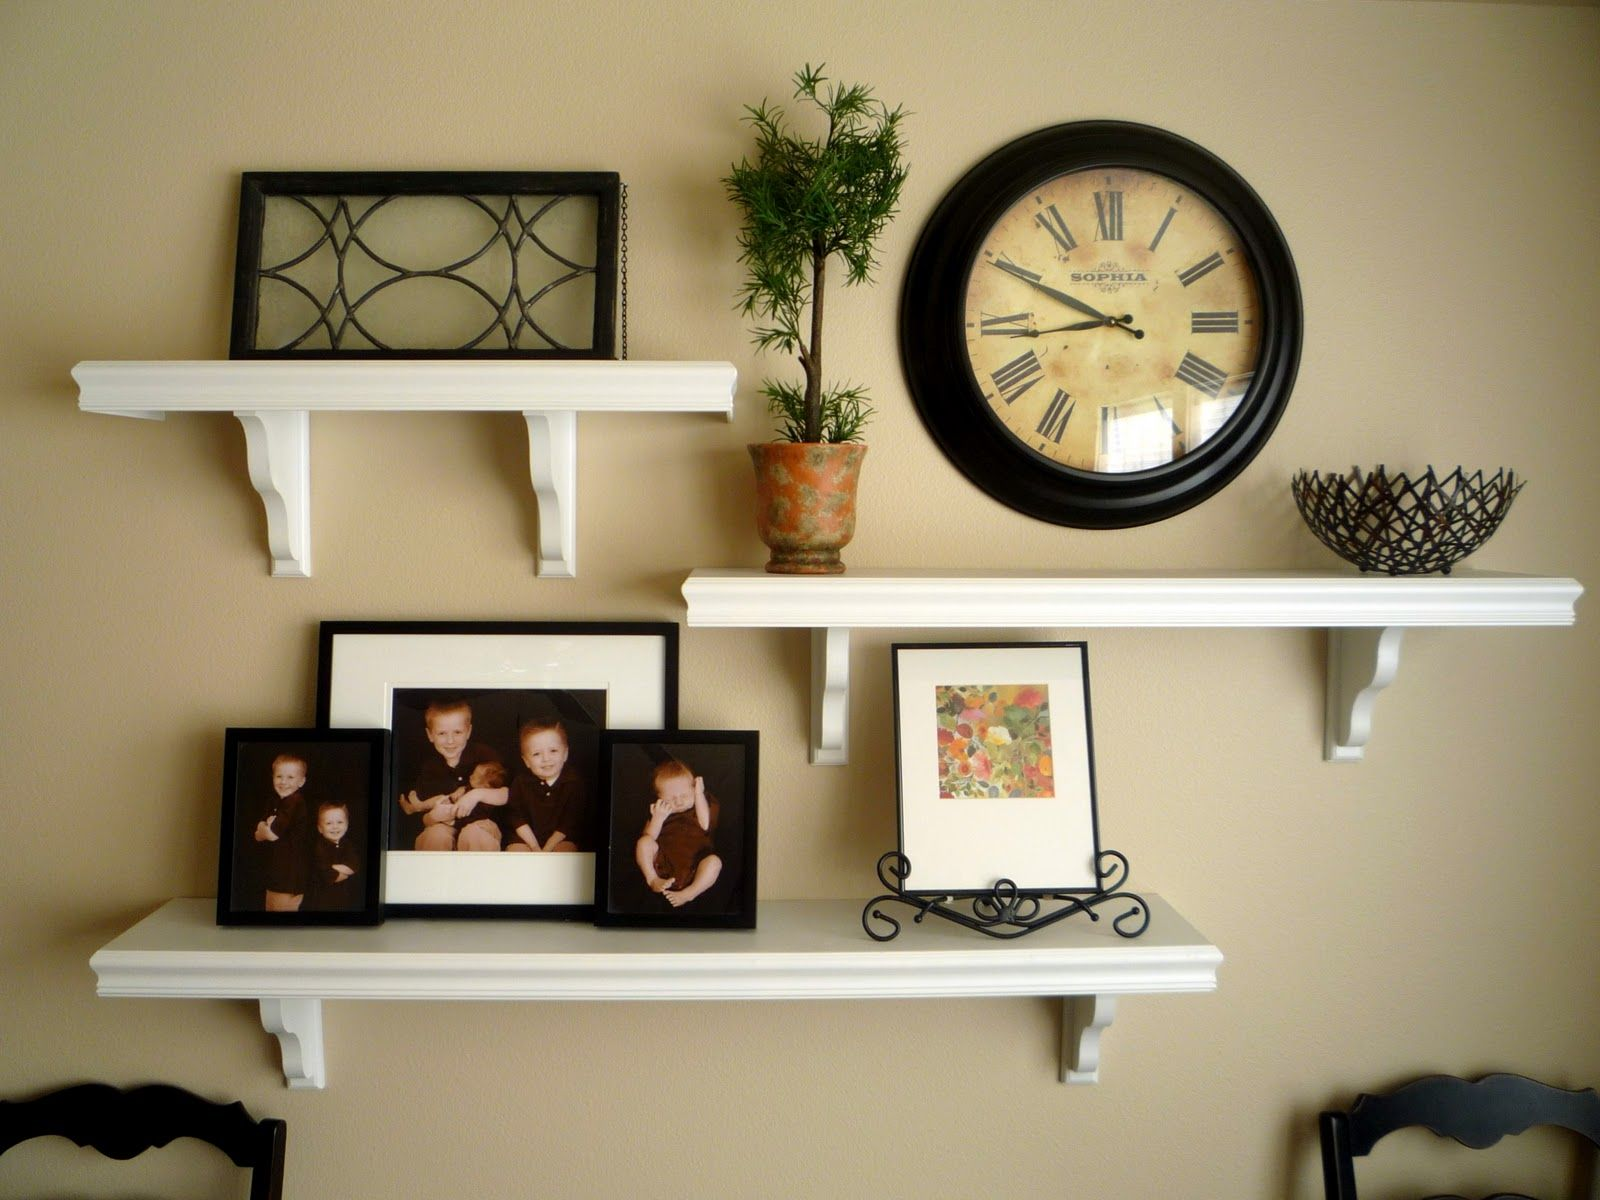 Best 25 wall shelf arrangement ideas on pinterest picture shelves on wall amipublicfo Image collections